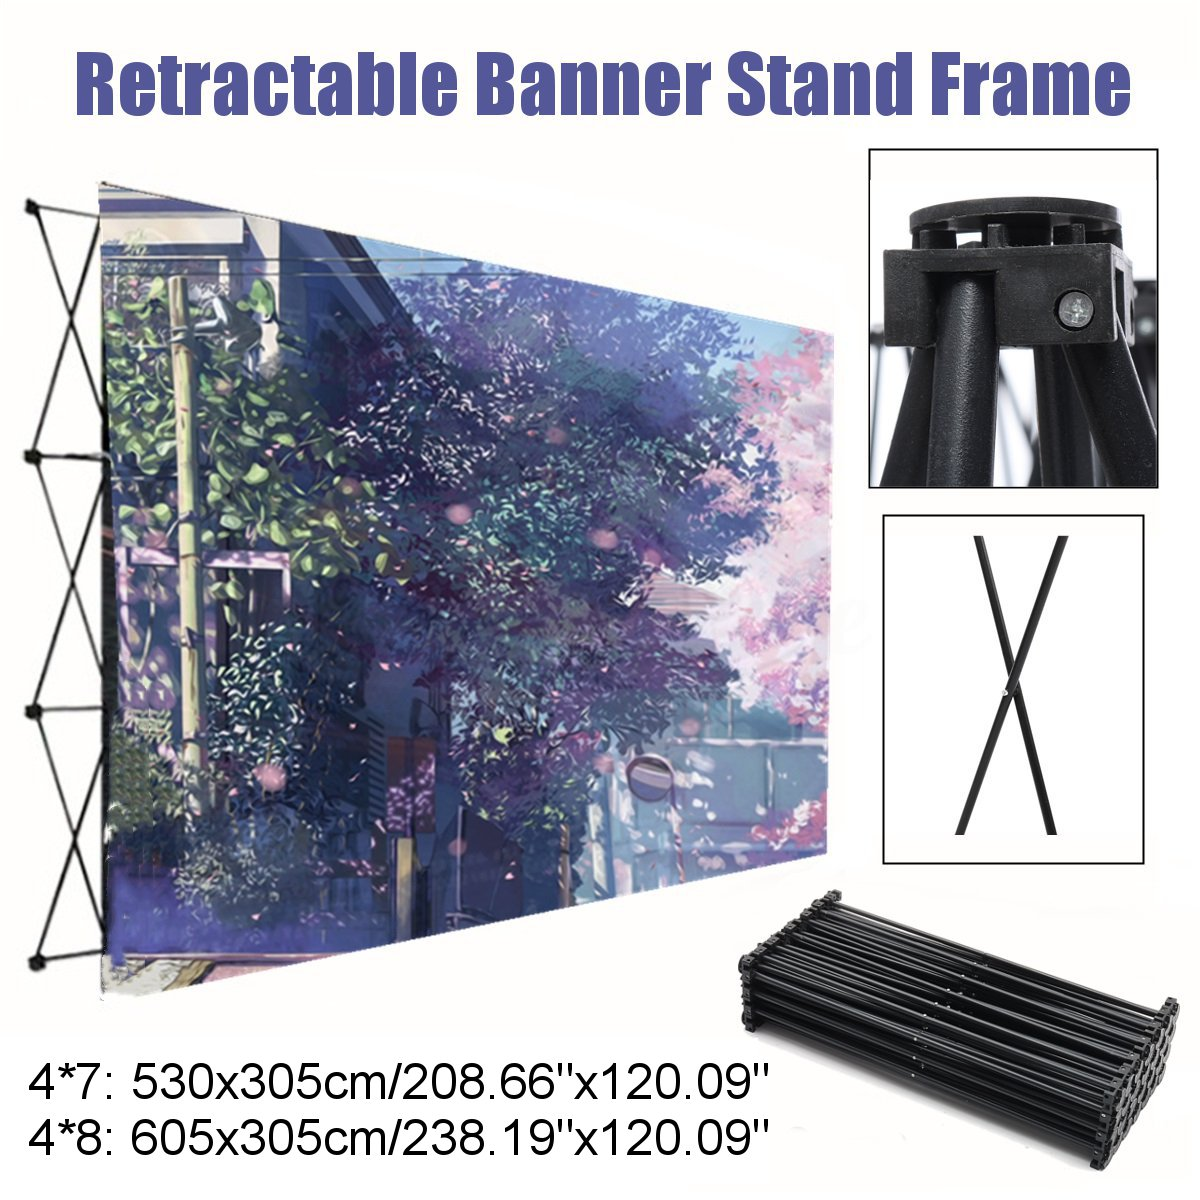 Retractable Iron Flower Wall Stand Frame Wedding Backdrop Decor Banner Presentation Advertisement Display Shelf Holder Kit